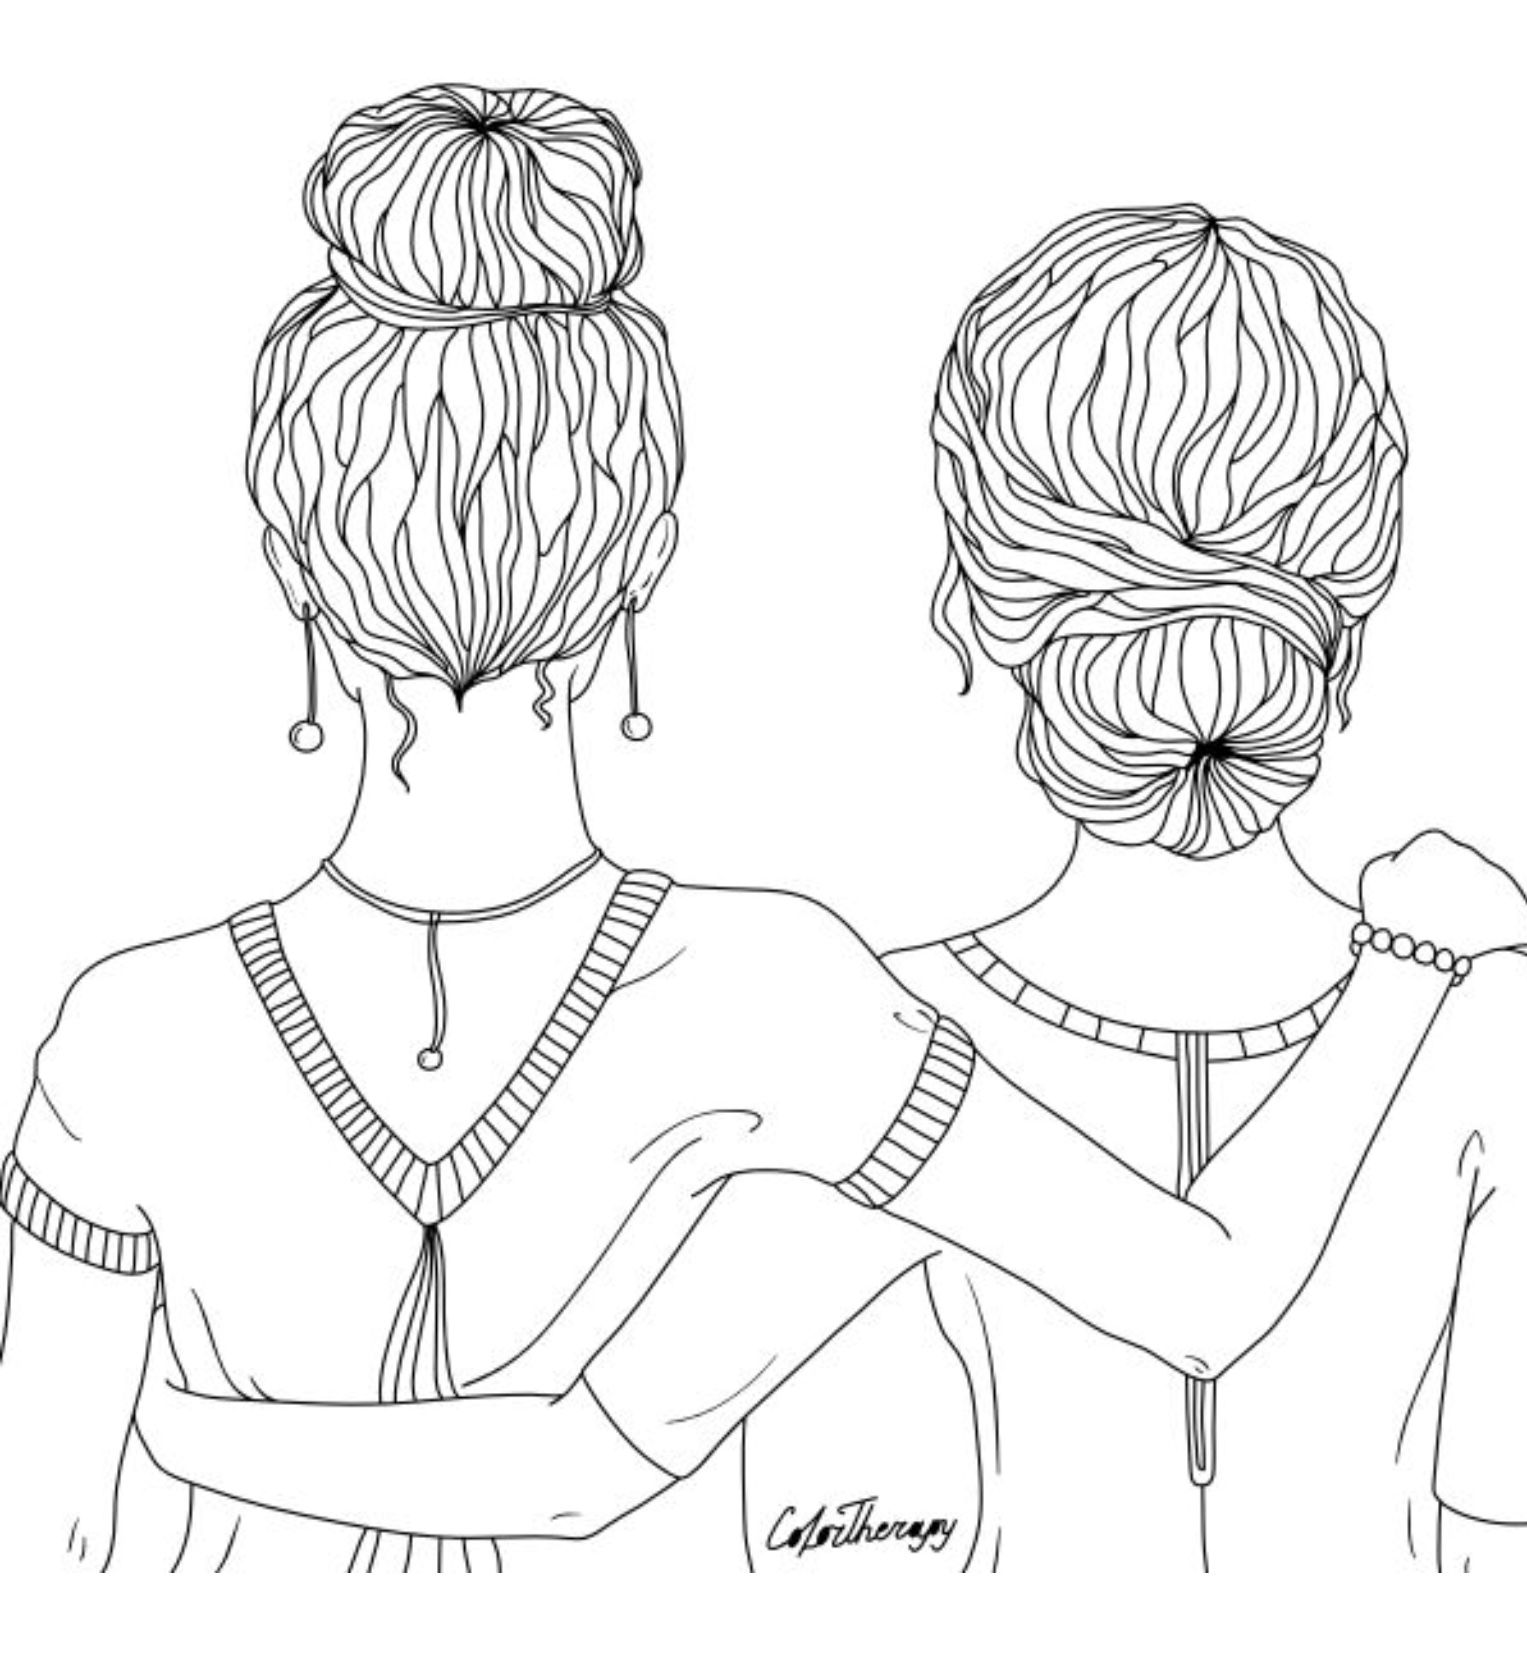 Best Friends Coloring Page Cute Coloring Pages Coloring Pages For Girls Best Friend Drawings